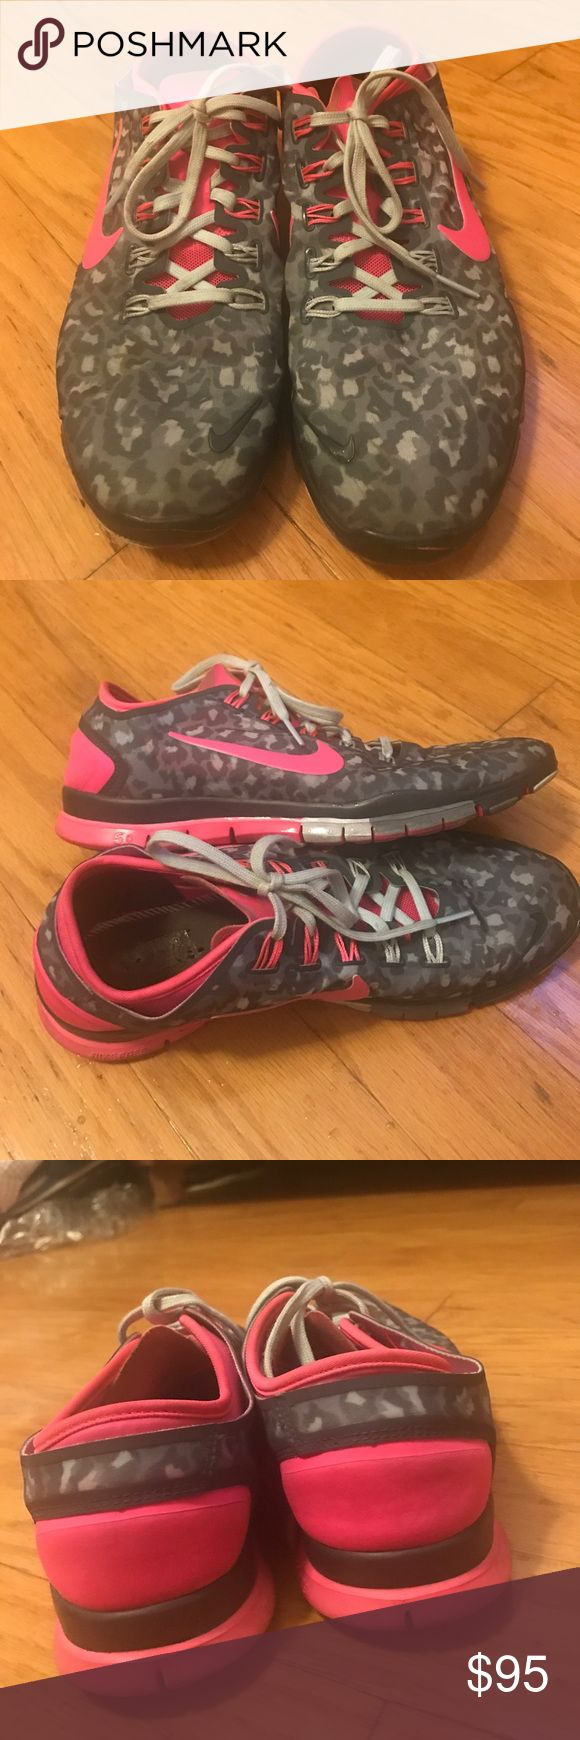 Nike free pink cheetah shoes Nike Free pink cheetah shoes in very good condition. Insoles have been removed because i use running active insoles. They are very comfortable and cute 😊🏃🏻♀️🏃🏻♀️ Nike Shoes Sneakers